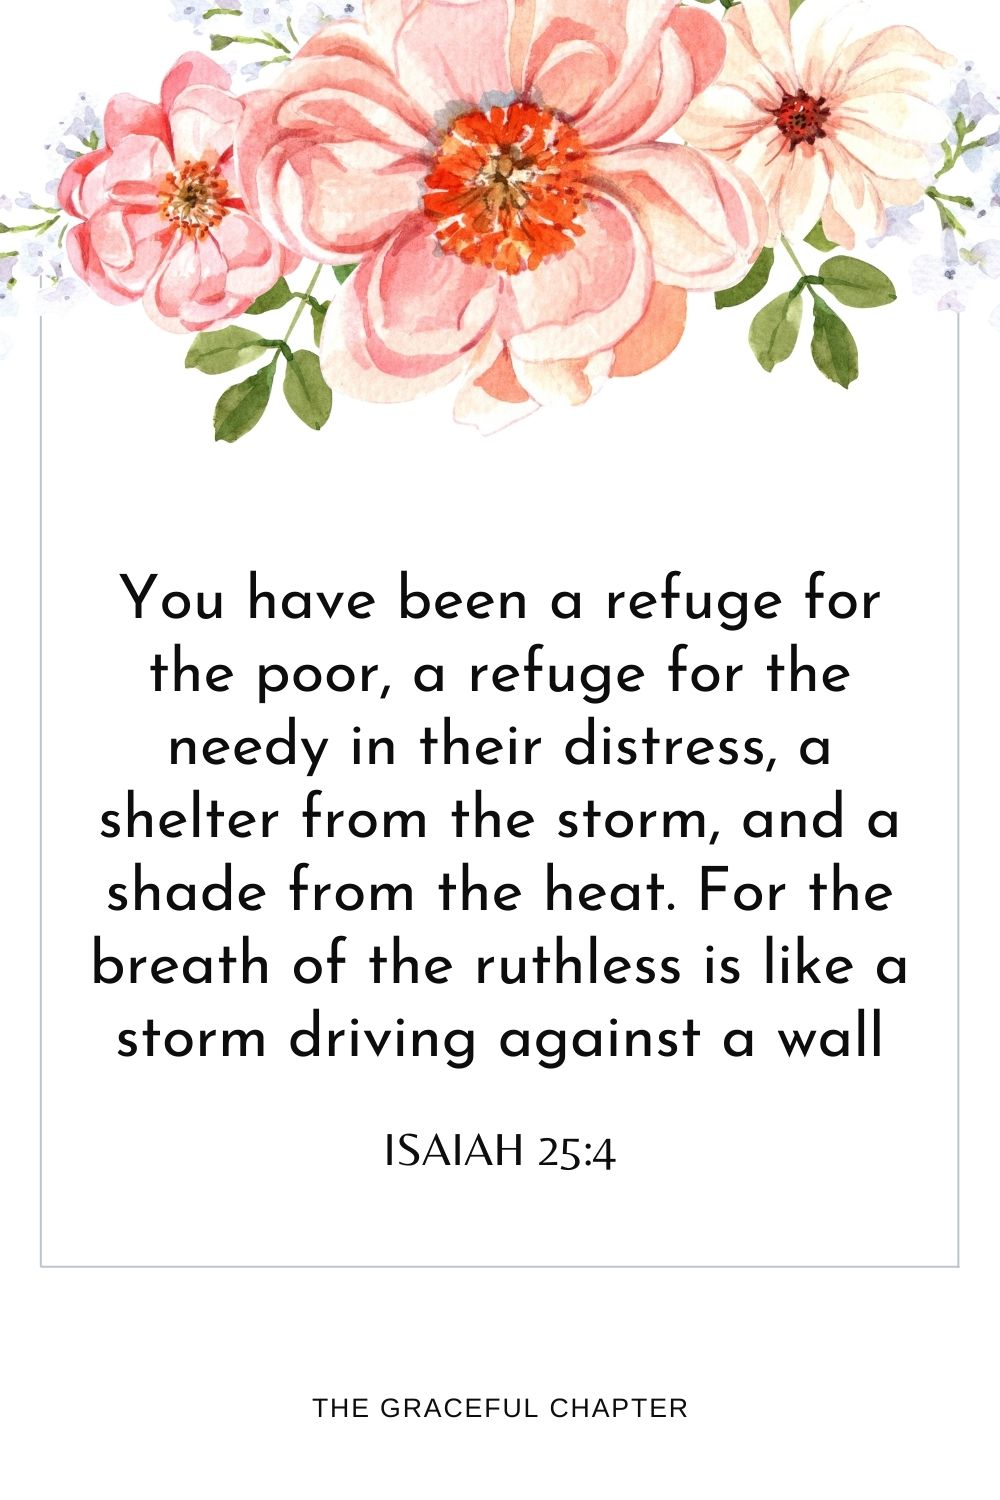 You have been a refugefor the poor, a refuge for the needyin their distress, a shelter from the storm, and a shade from the heat. For the breath of the ruthless is like a storm driving against a wall Isaiah 25:4